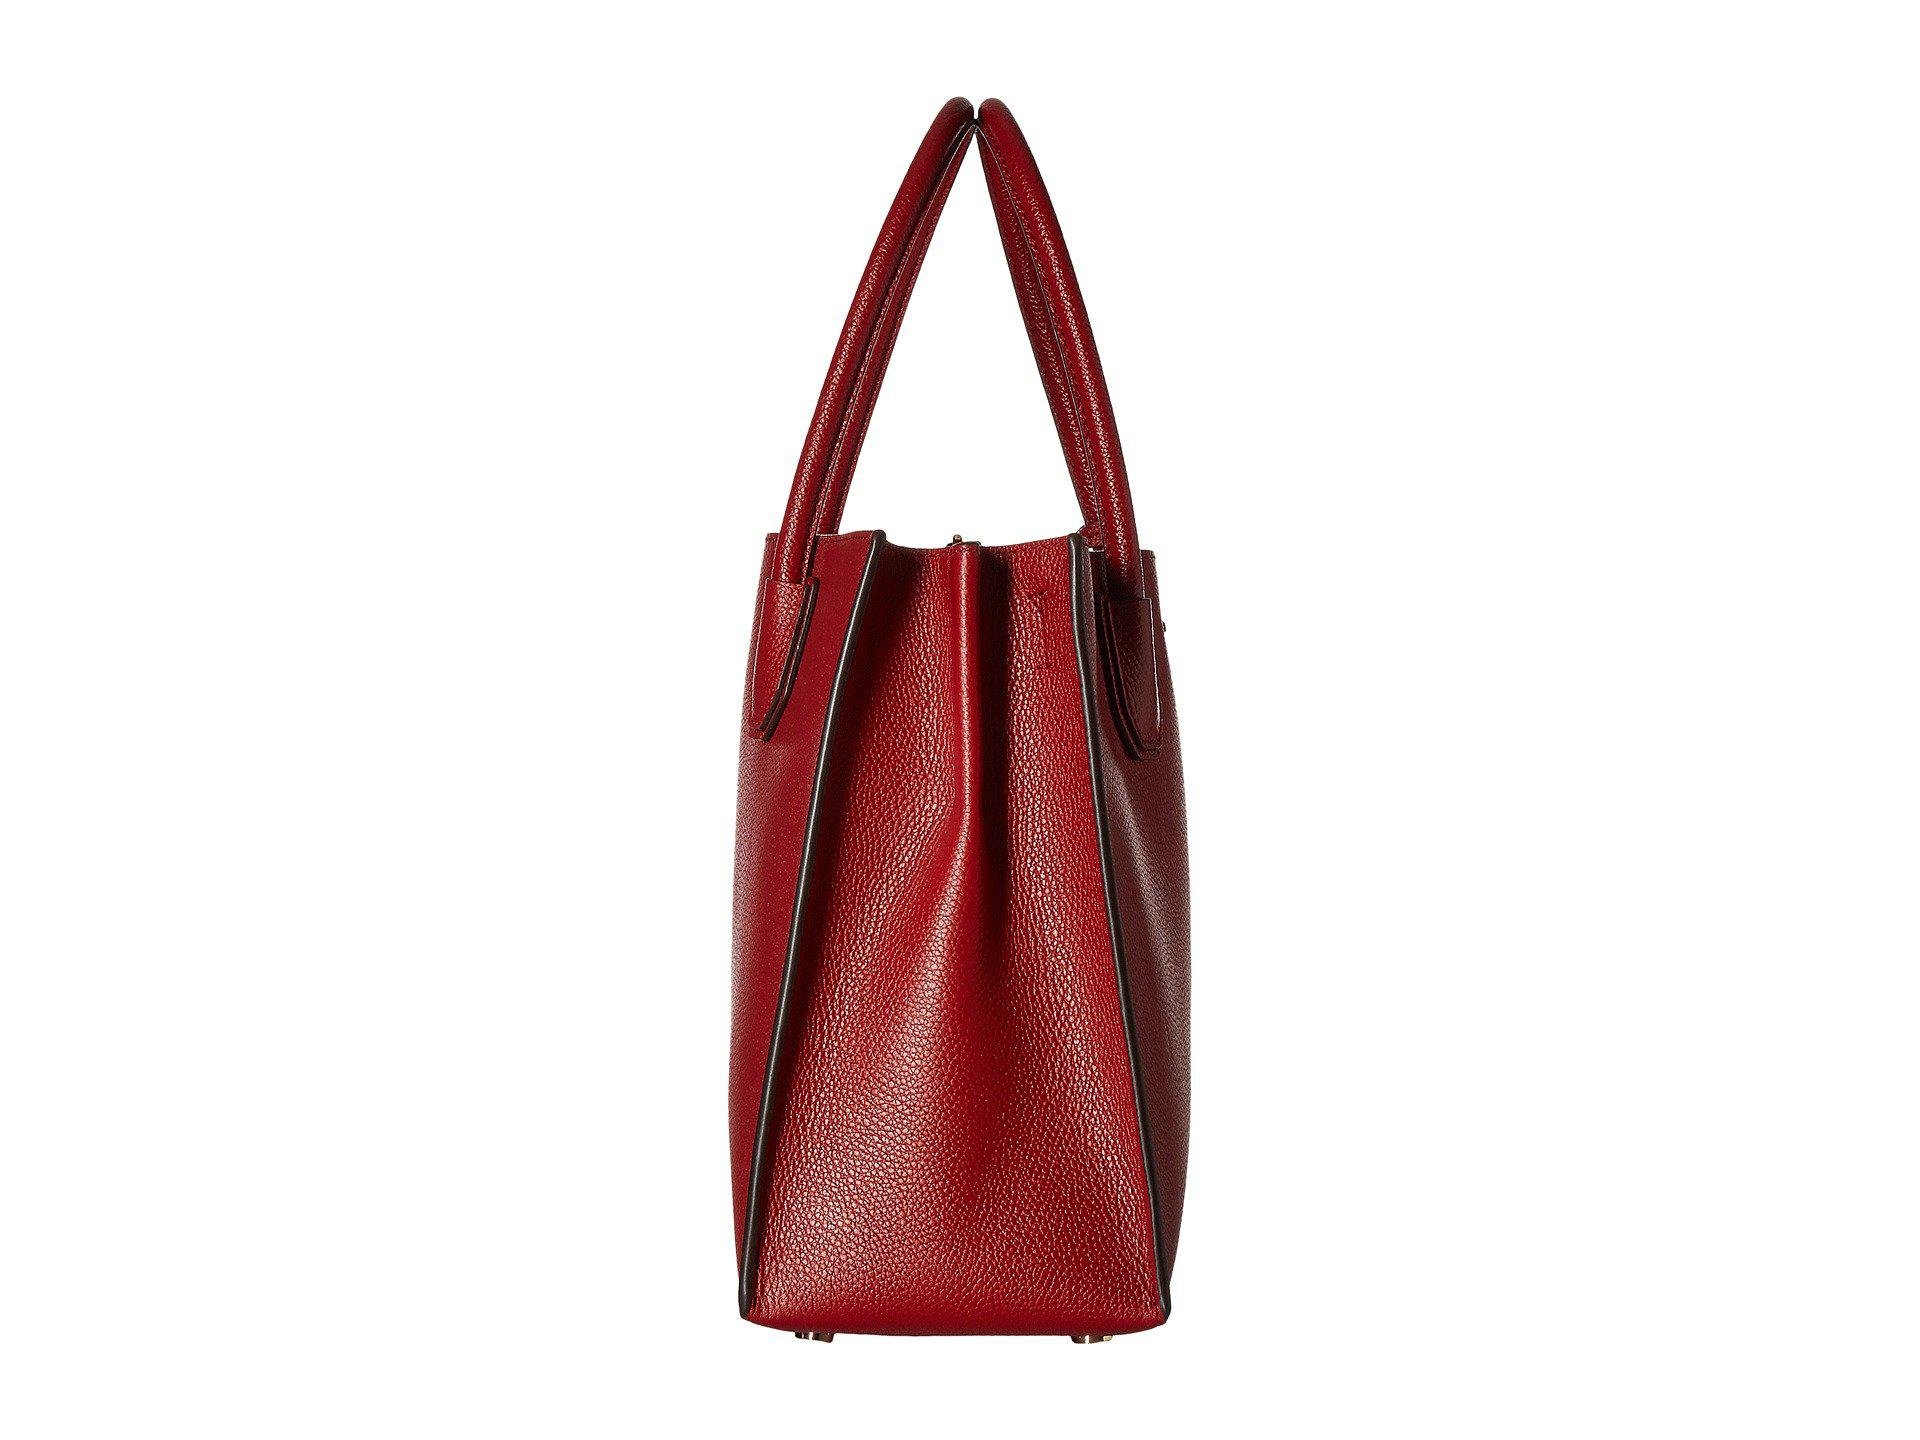 fb811fcec5 Lyst - MICHAEL Michael Kors Large Mercer Leather Tote Bag in Red